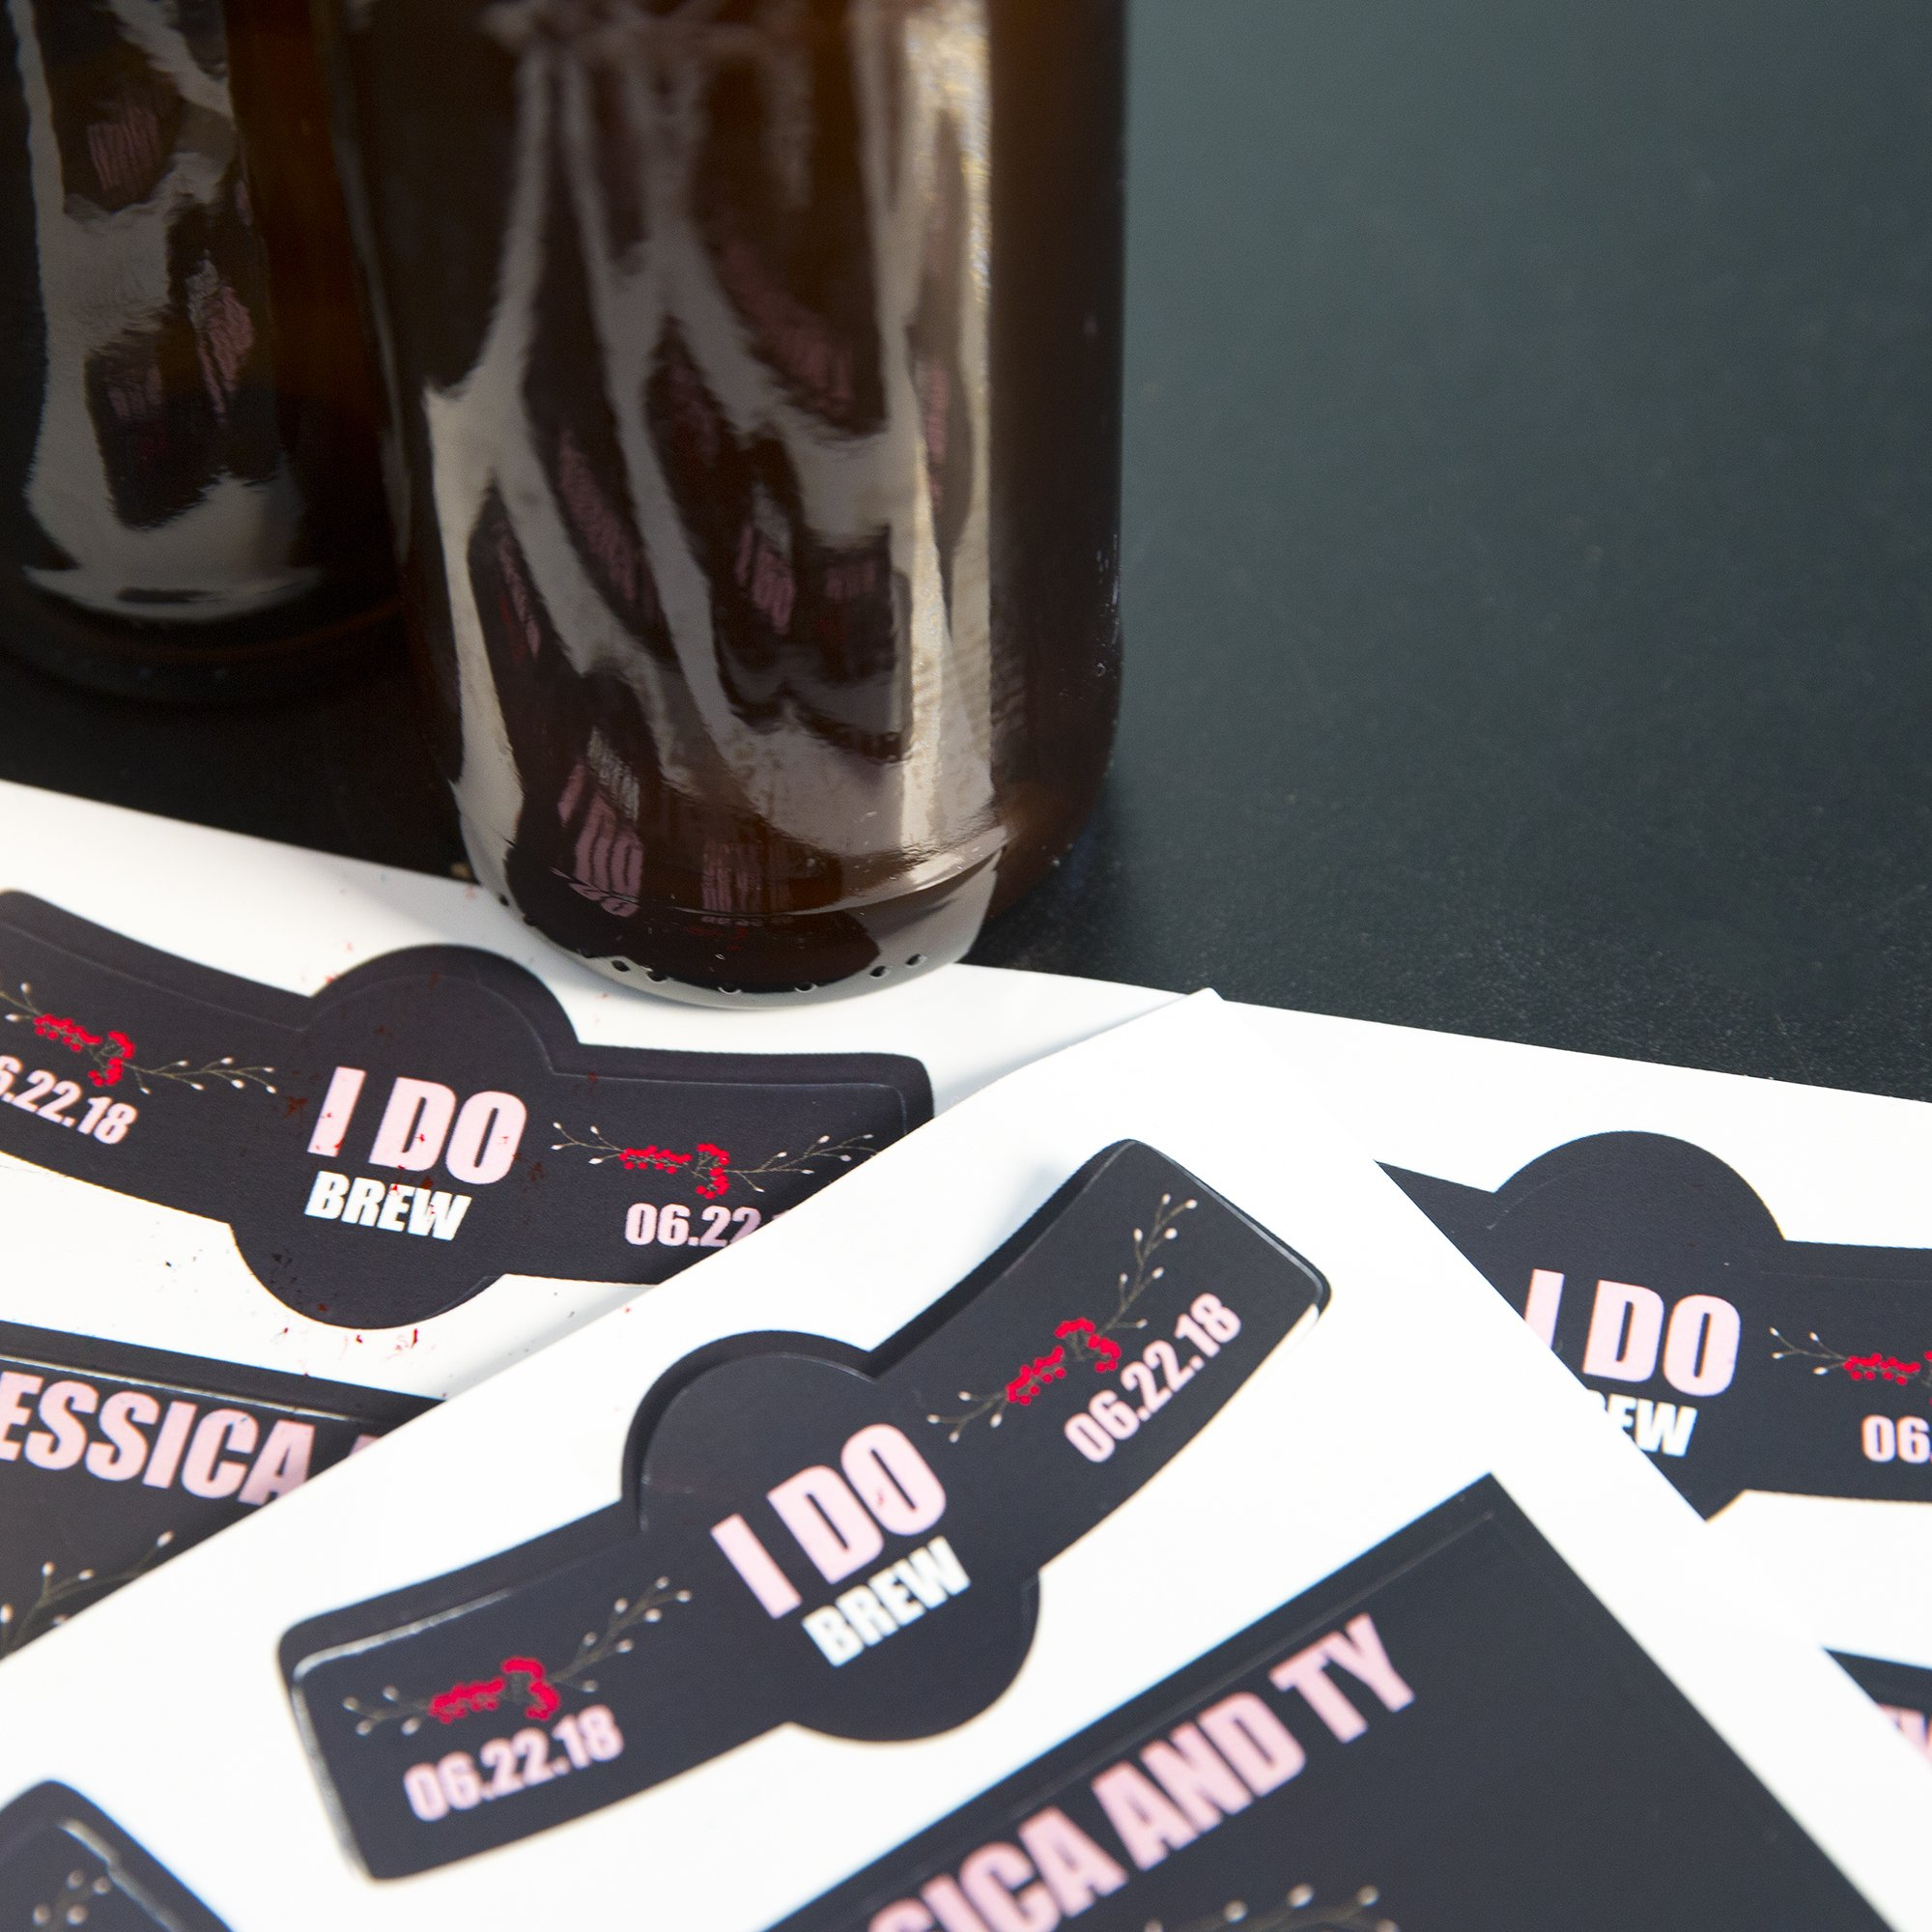 Neato Blank Beer Bottle Labels - 40 pack - Water Resistant, Vinyl, For InkJet Printers by Neato (Image #3)